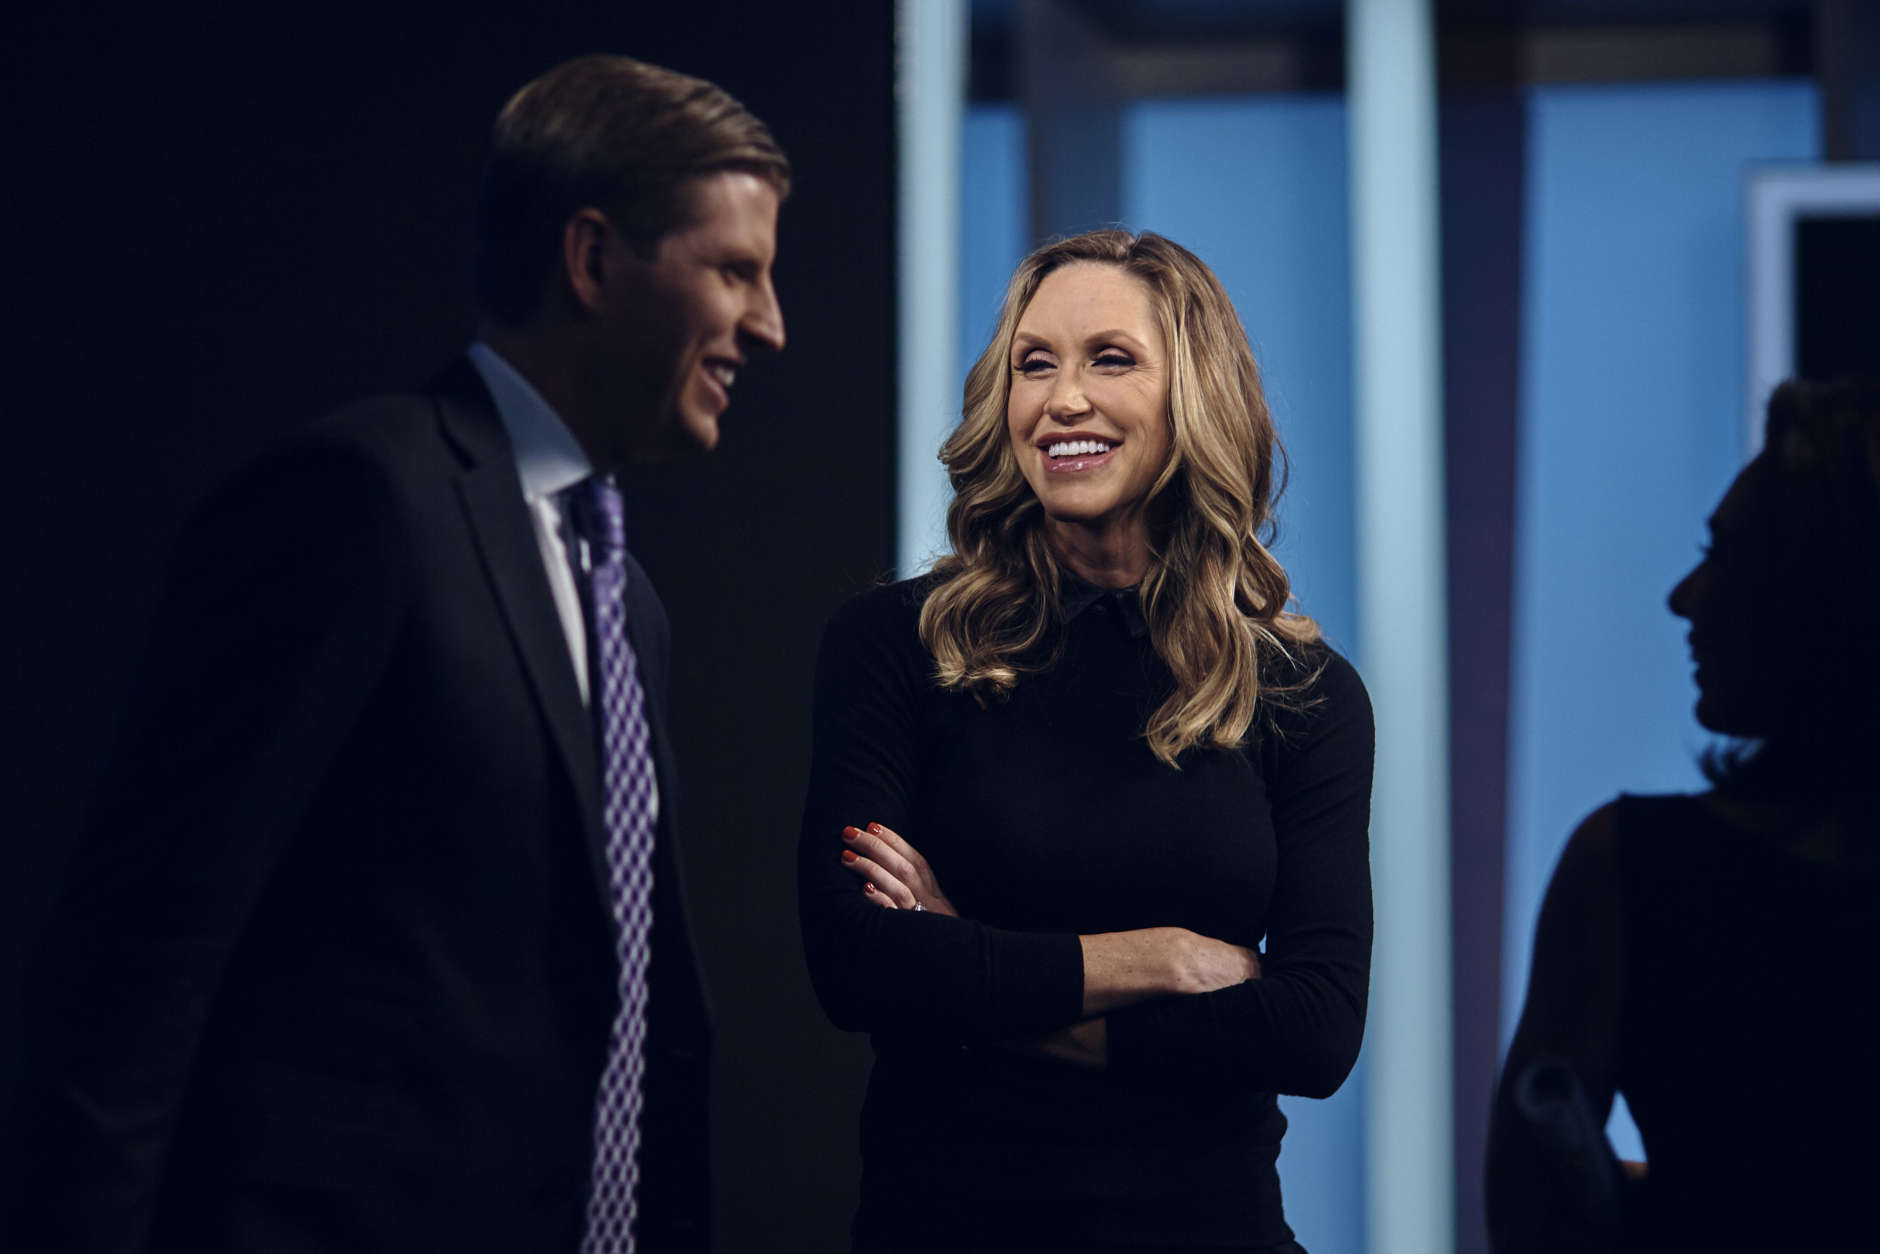 """Eric Trump, left, and Lara Trump, center, talk to Jeanine Pirro, right, after they taped a segment of """"Justice With Judge Jeanine,"""" in New York, Friday, Oct. 13, 2017. The interview is scheduled to air on Saturday, Oct. 14., on the Fox News Network. (AP Photo/Andres Kudacki)"""